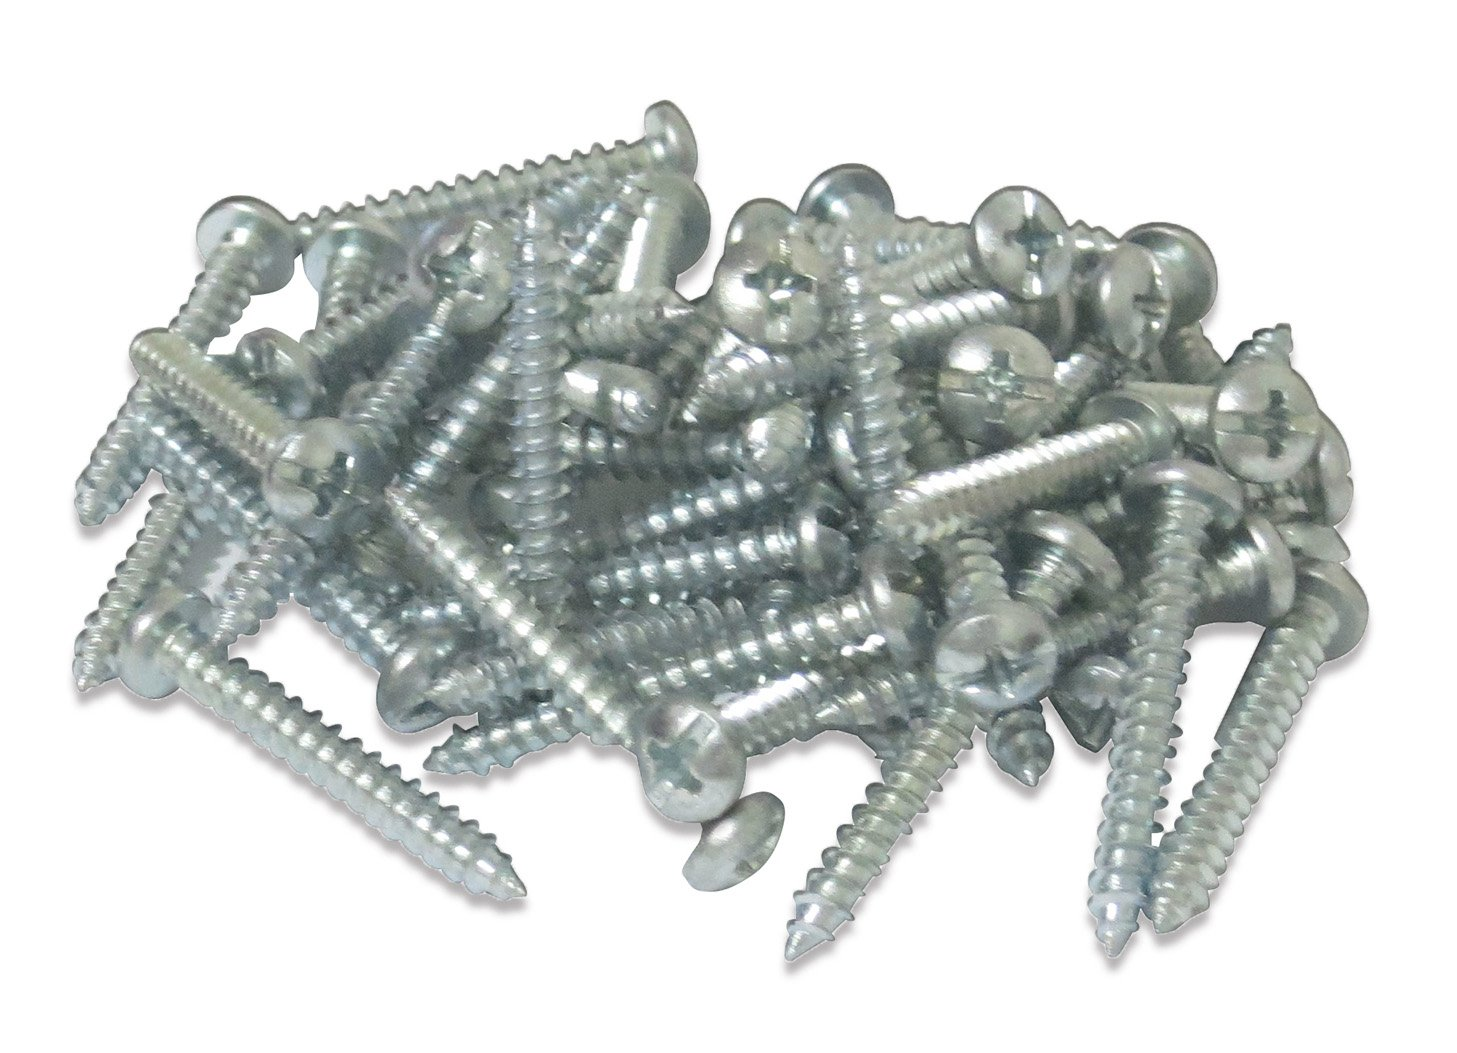 Premium Quality Self-Drilling Drywall Zinc Anchors with Screws Kit, 40 Pieces